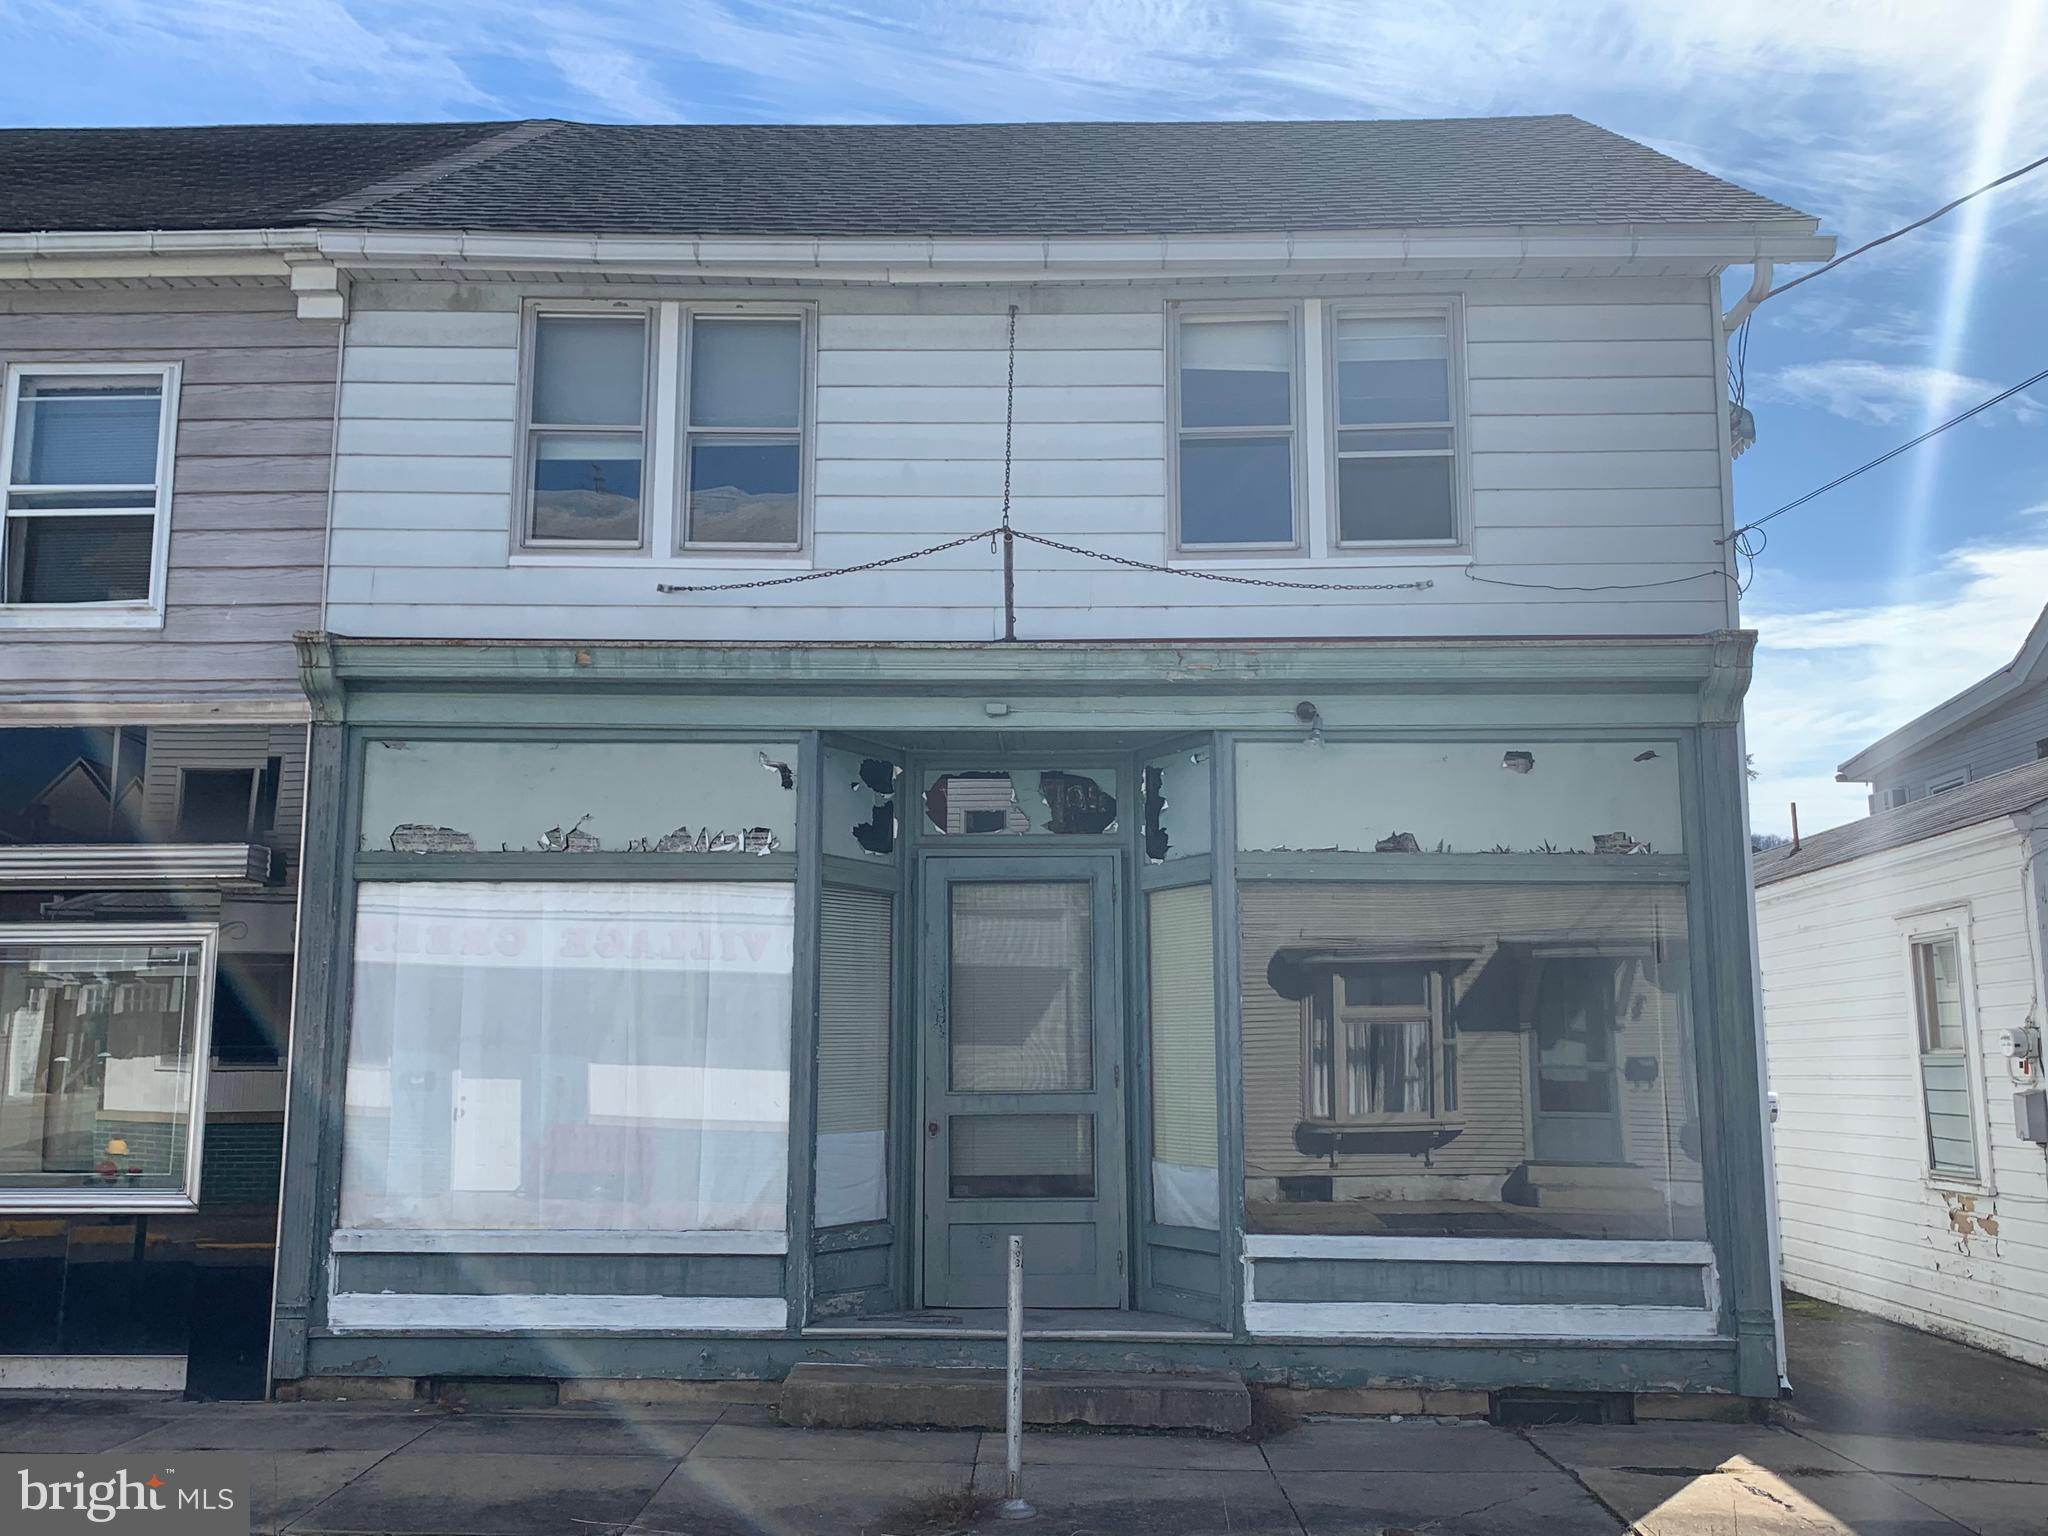 294 CENTER STREET, MILLERSBURG, PA 17061